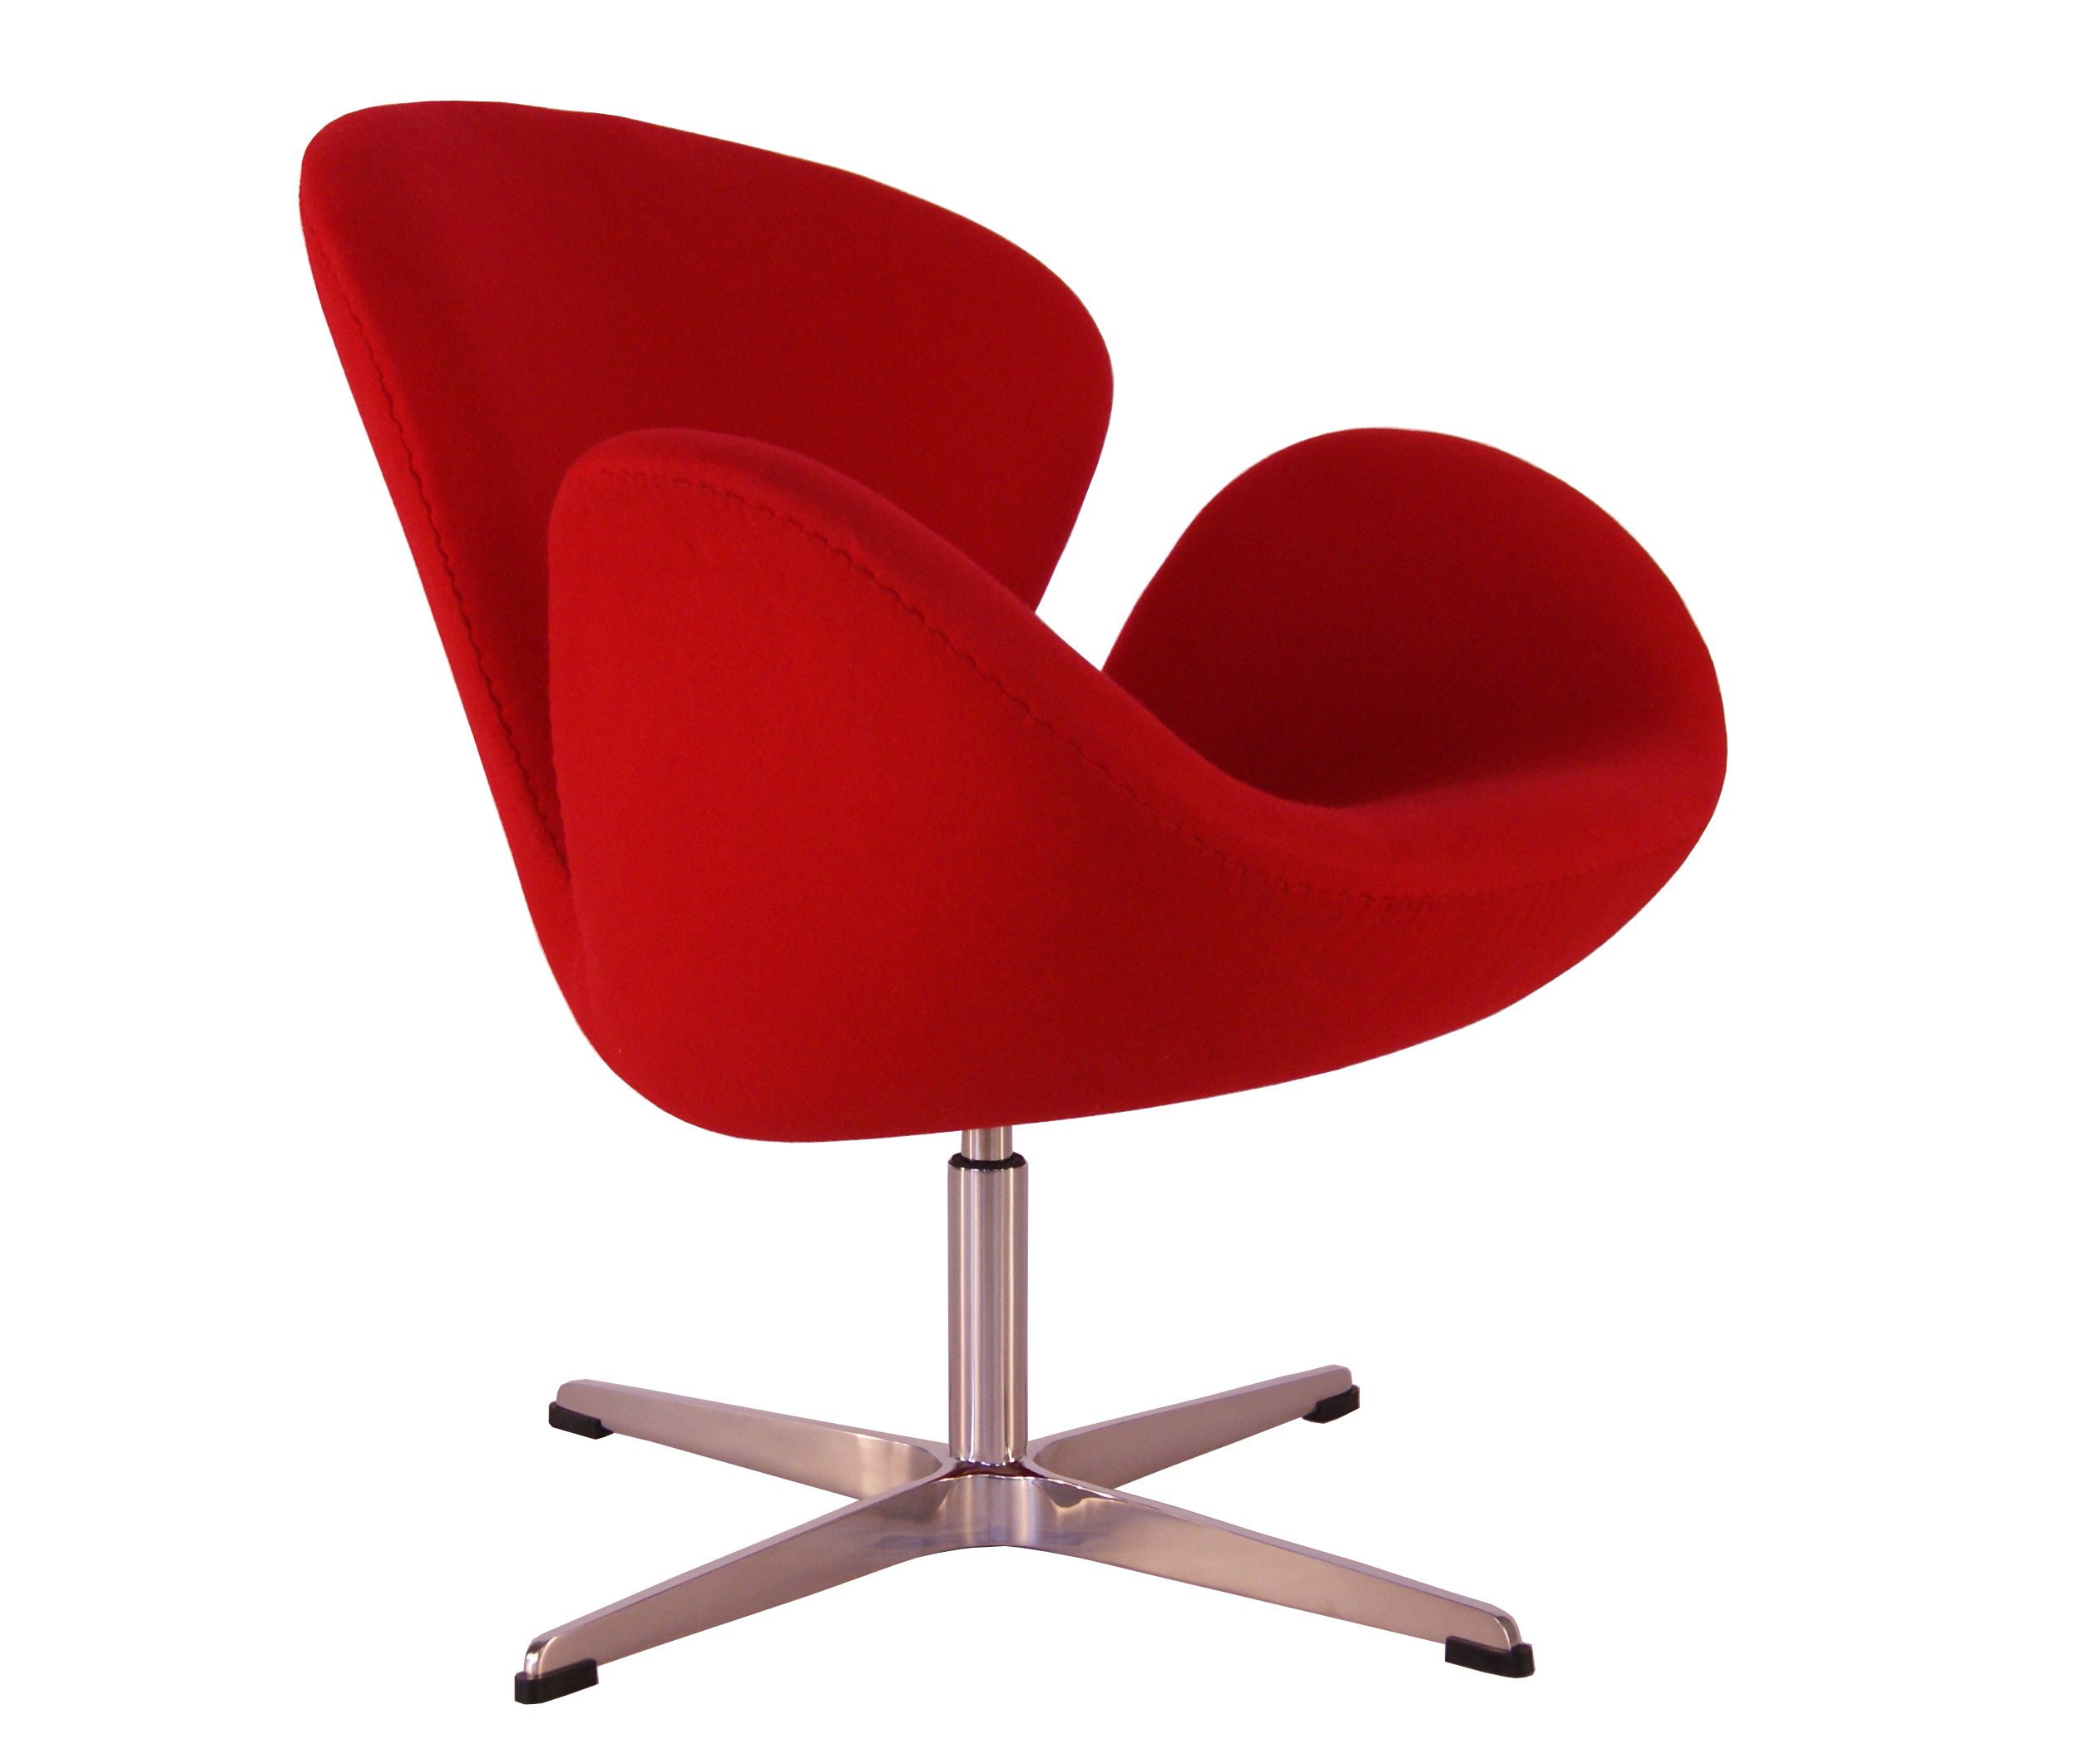 Chaise design rouge - Chaise rouge design pas cher ...